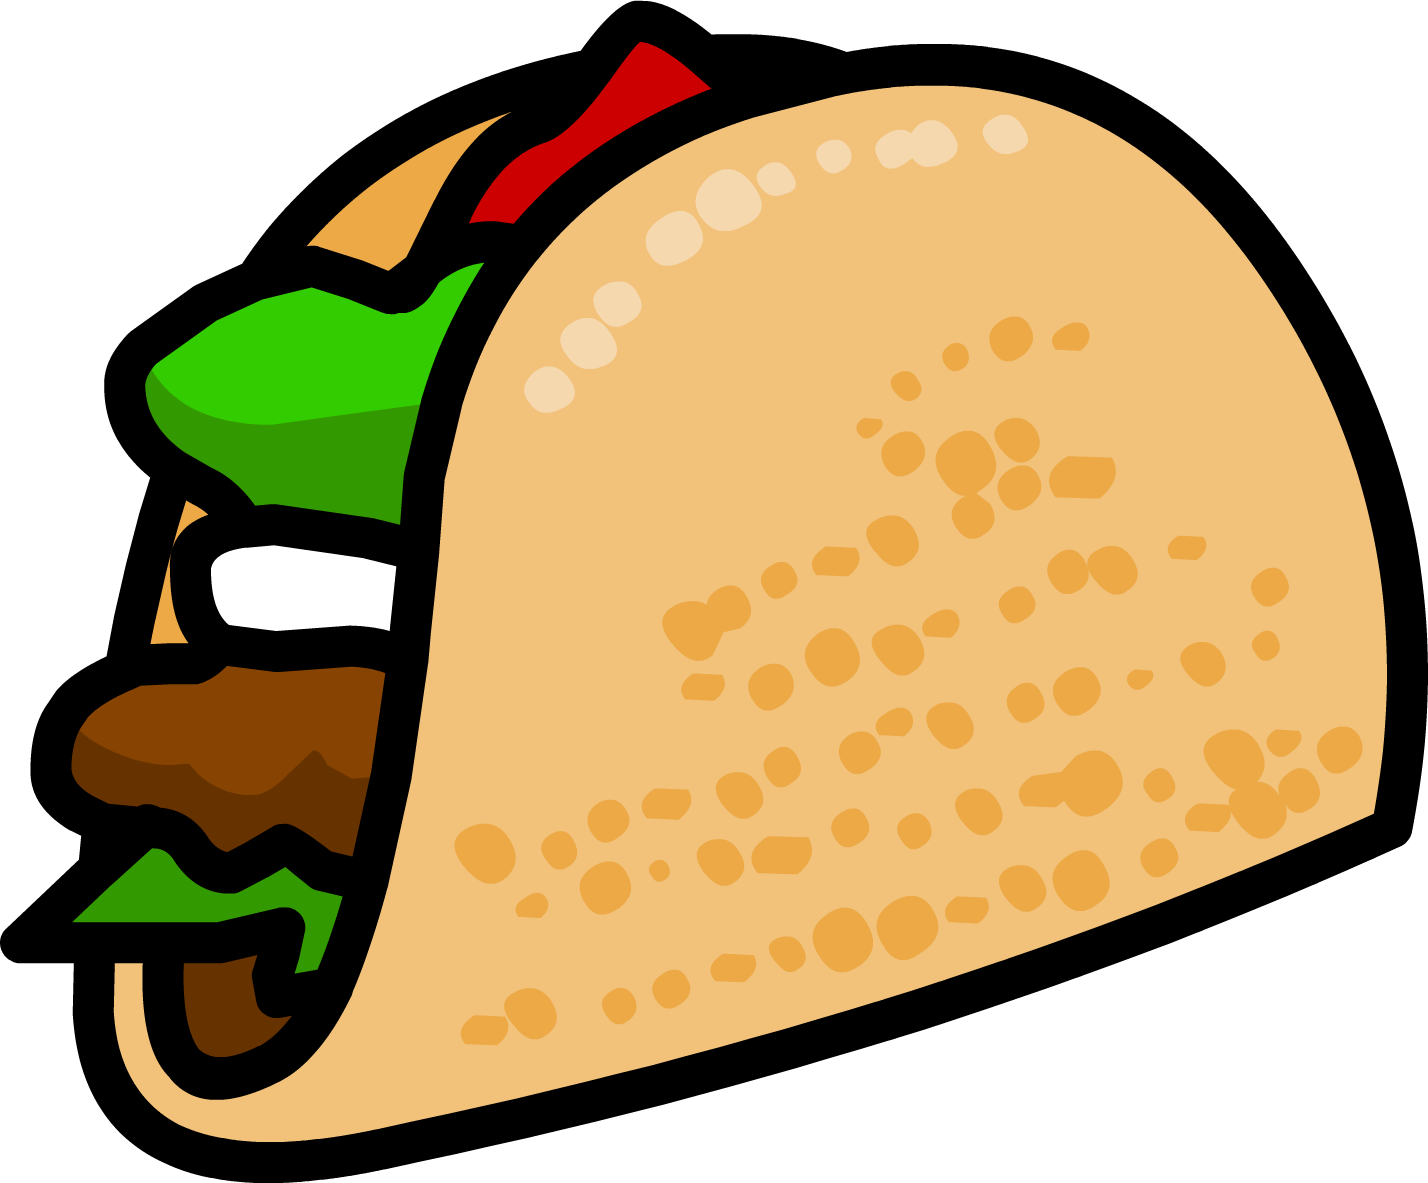 Taco clipart free clip art images 3 image 3